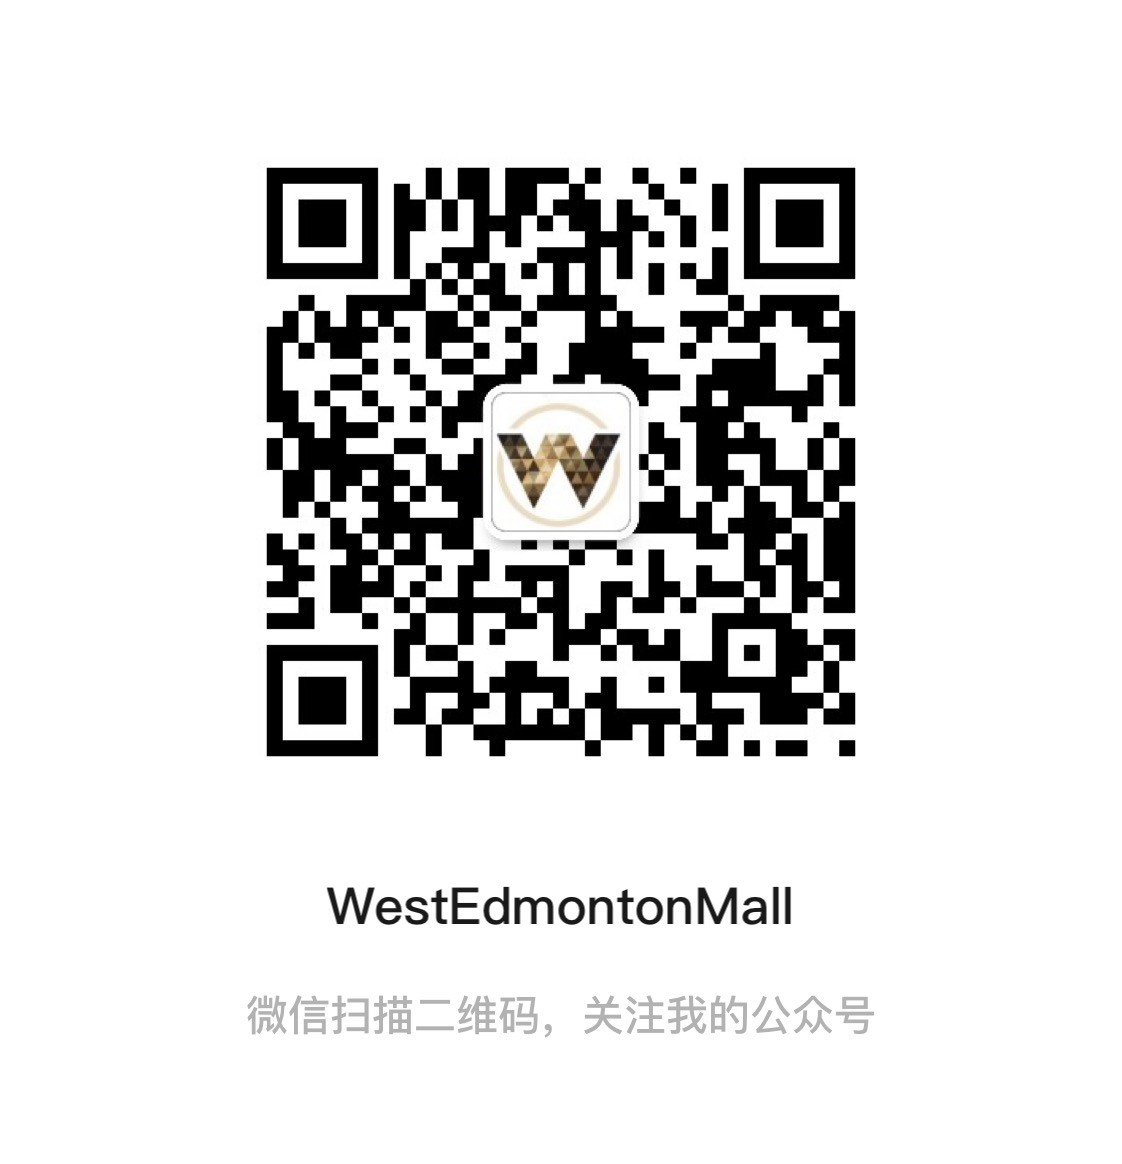 Care | West Edmonton Mall